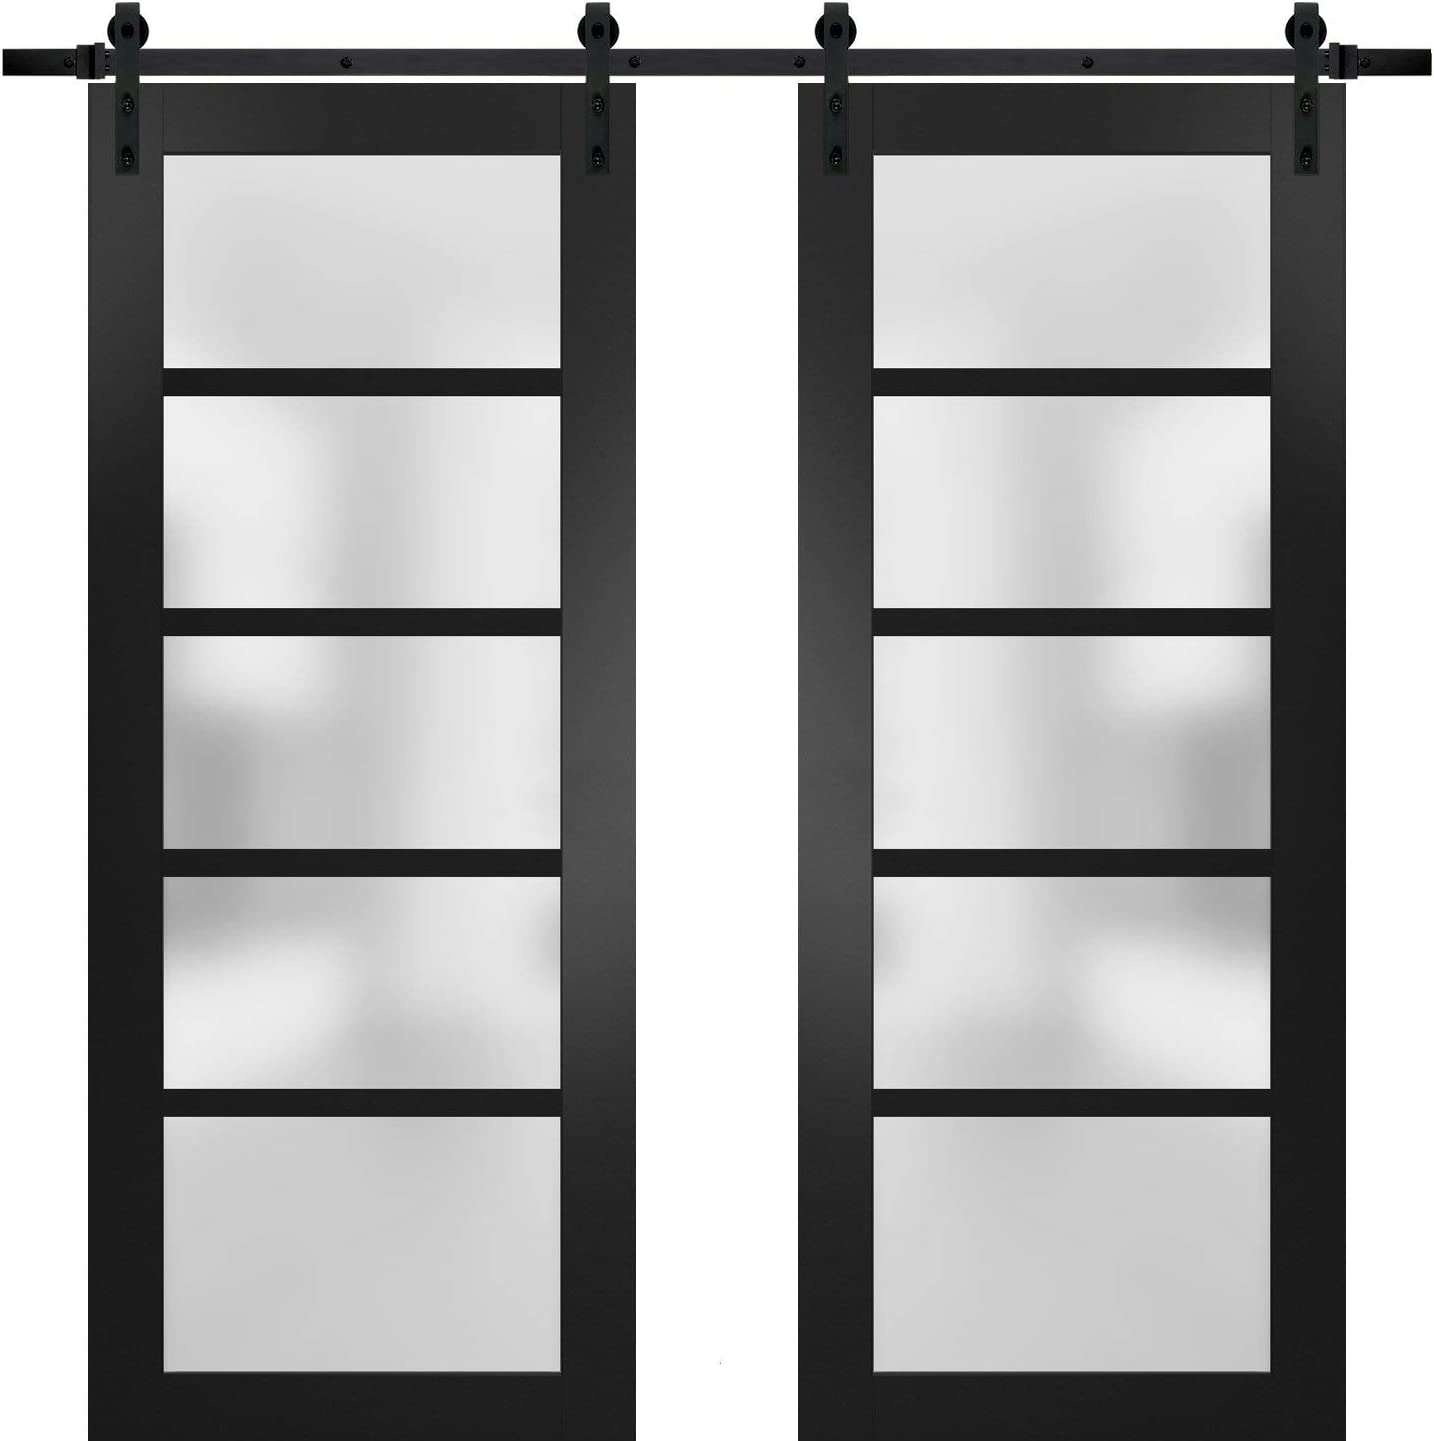 Sturdy Double Barn Door 36 x 80 inches with Frosted Glass Solid Panel Interior Doors Quadro 4002 Matte Black Top Mount 13FT Rail Hangers Heavy Set